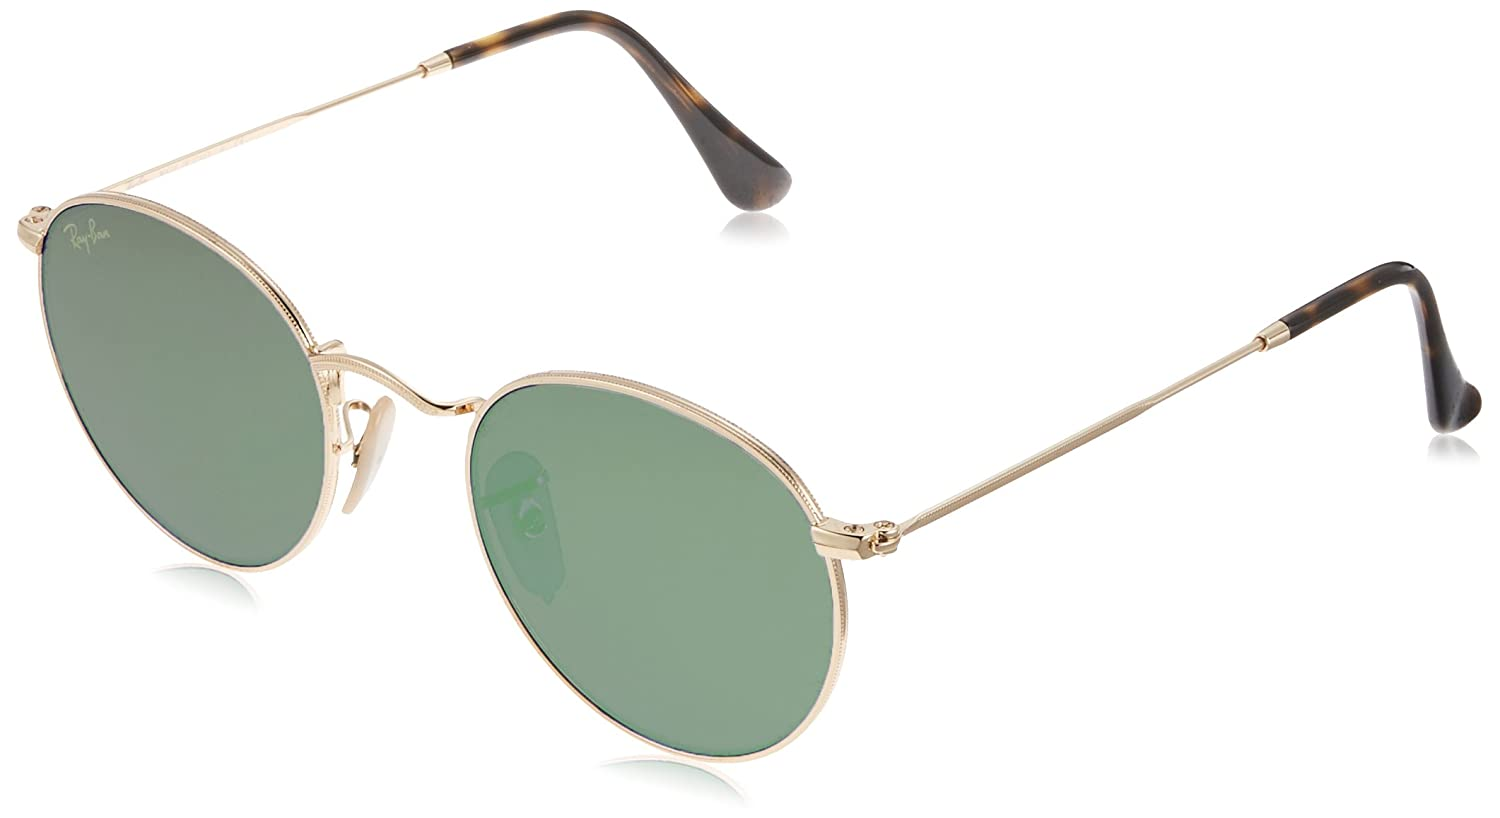 Ray-Ban Round Metal Polarized Sunglasses Ray-Ban Sunglasses 0RB3447